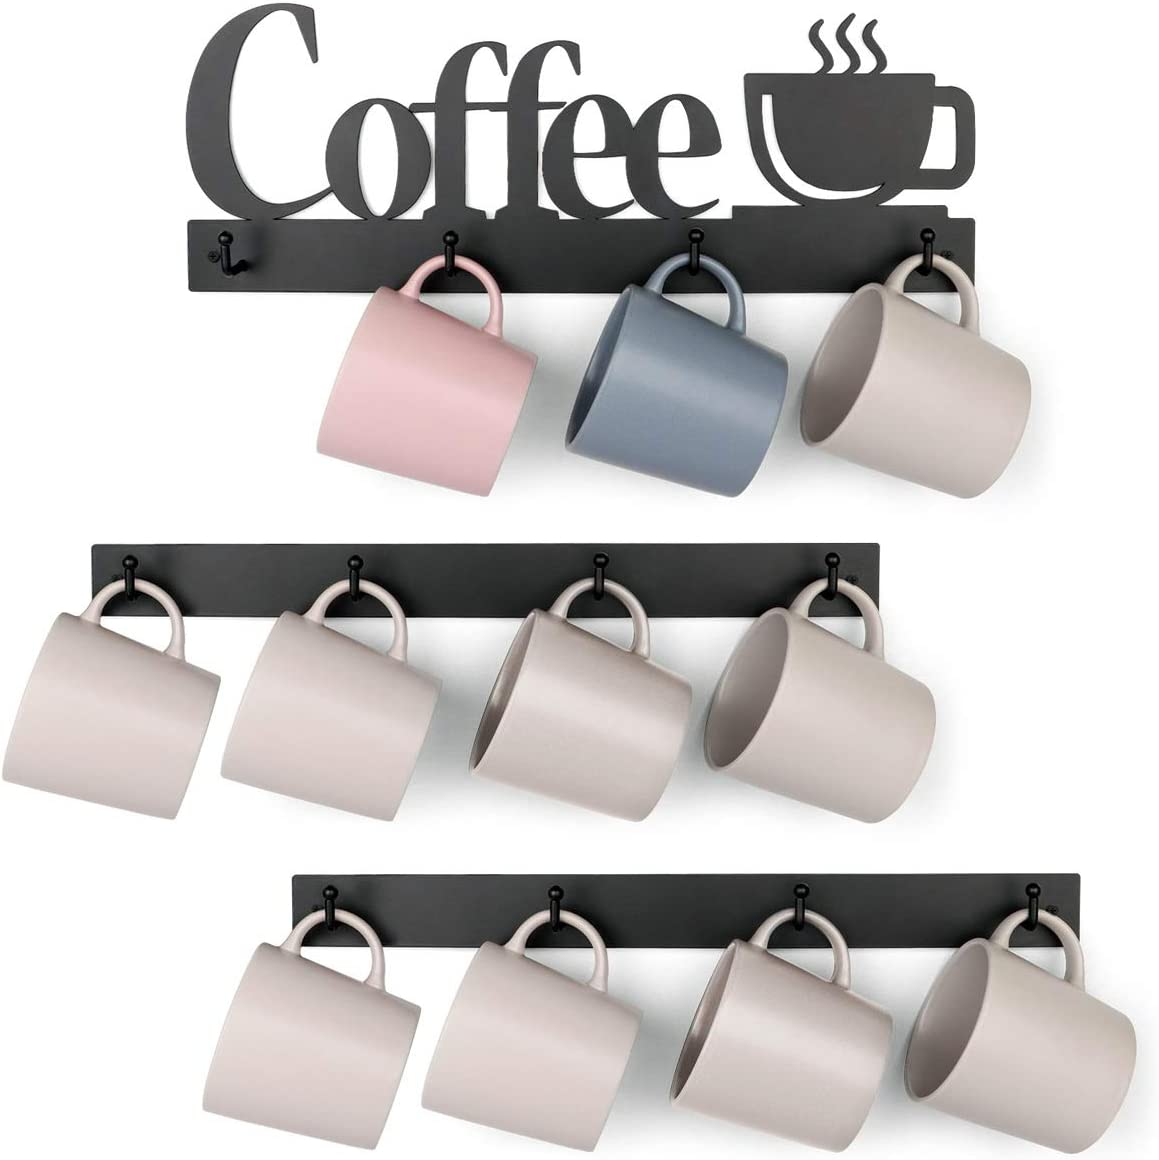 HULISEN Metal Coffee Mug Rack with 12 Hooks, Wall Mounted Coffee Cup Holder with Coffee Sign, Tea Cup Hanger for Bar Kitchen Organizer Display, Coffee Nook Decor, Black